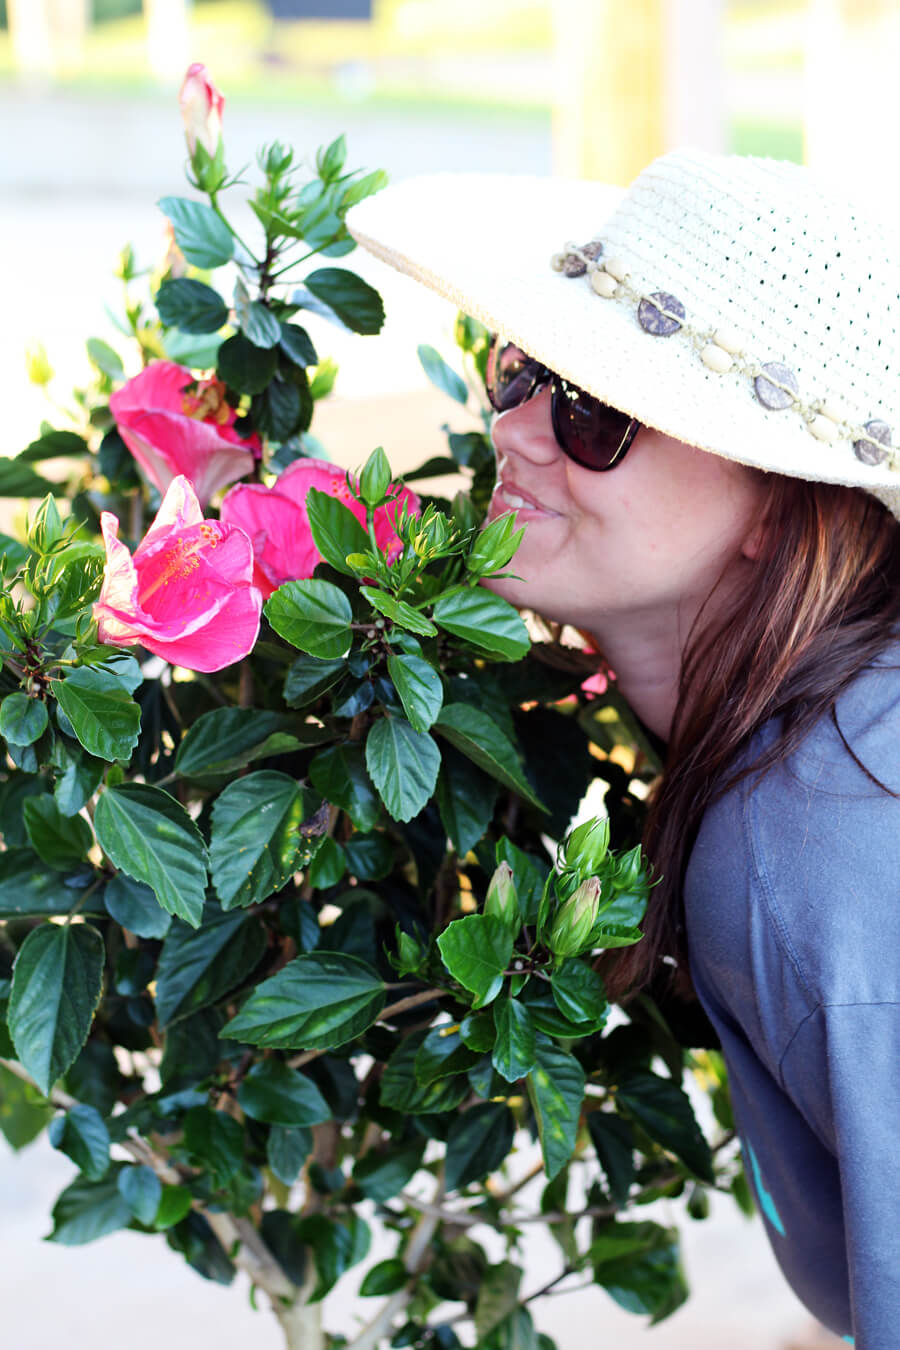 A young girl with hat and sunglasses smelling flowers